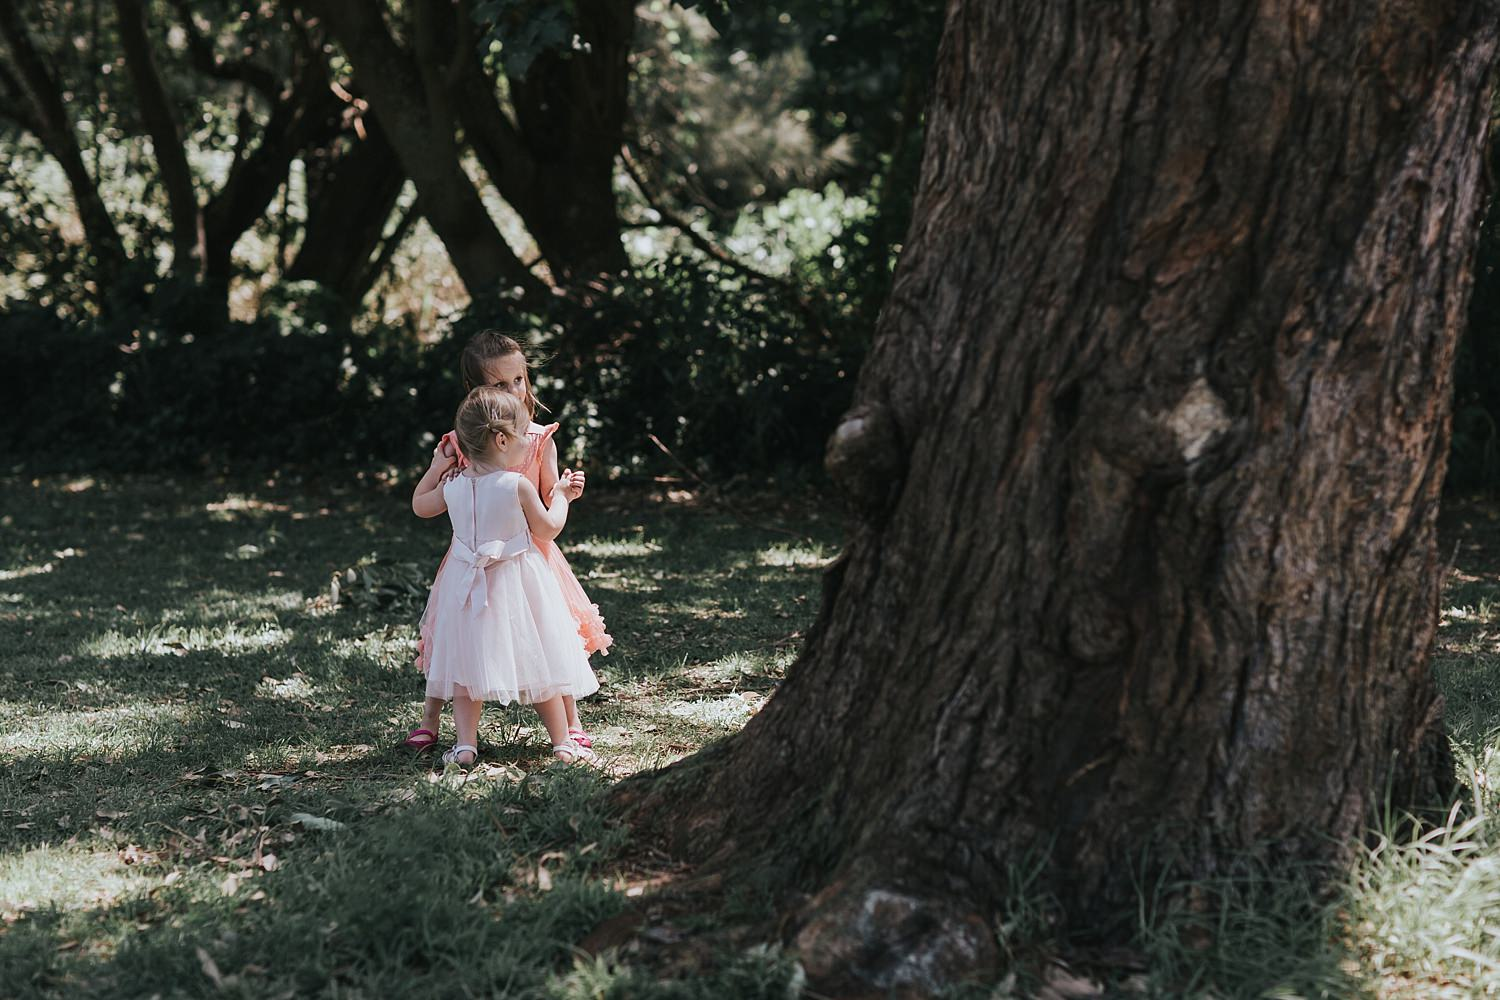 flowergirls playing under the tree